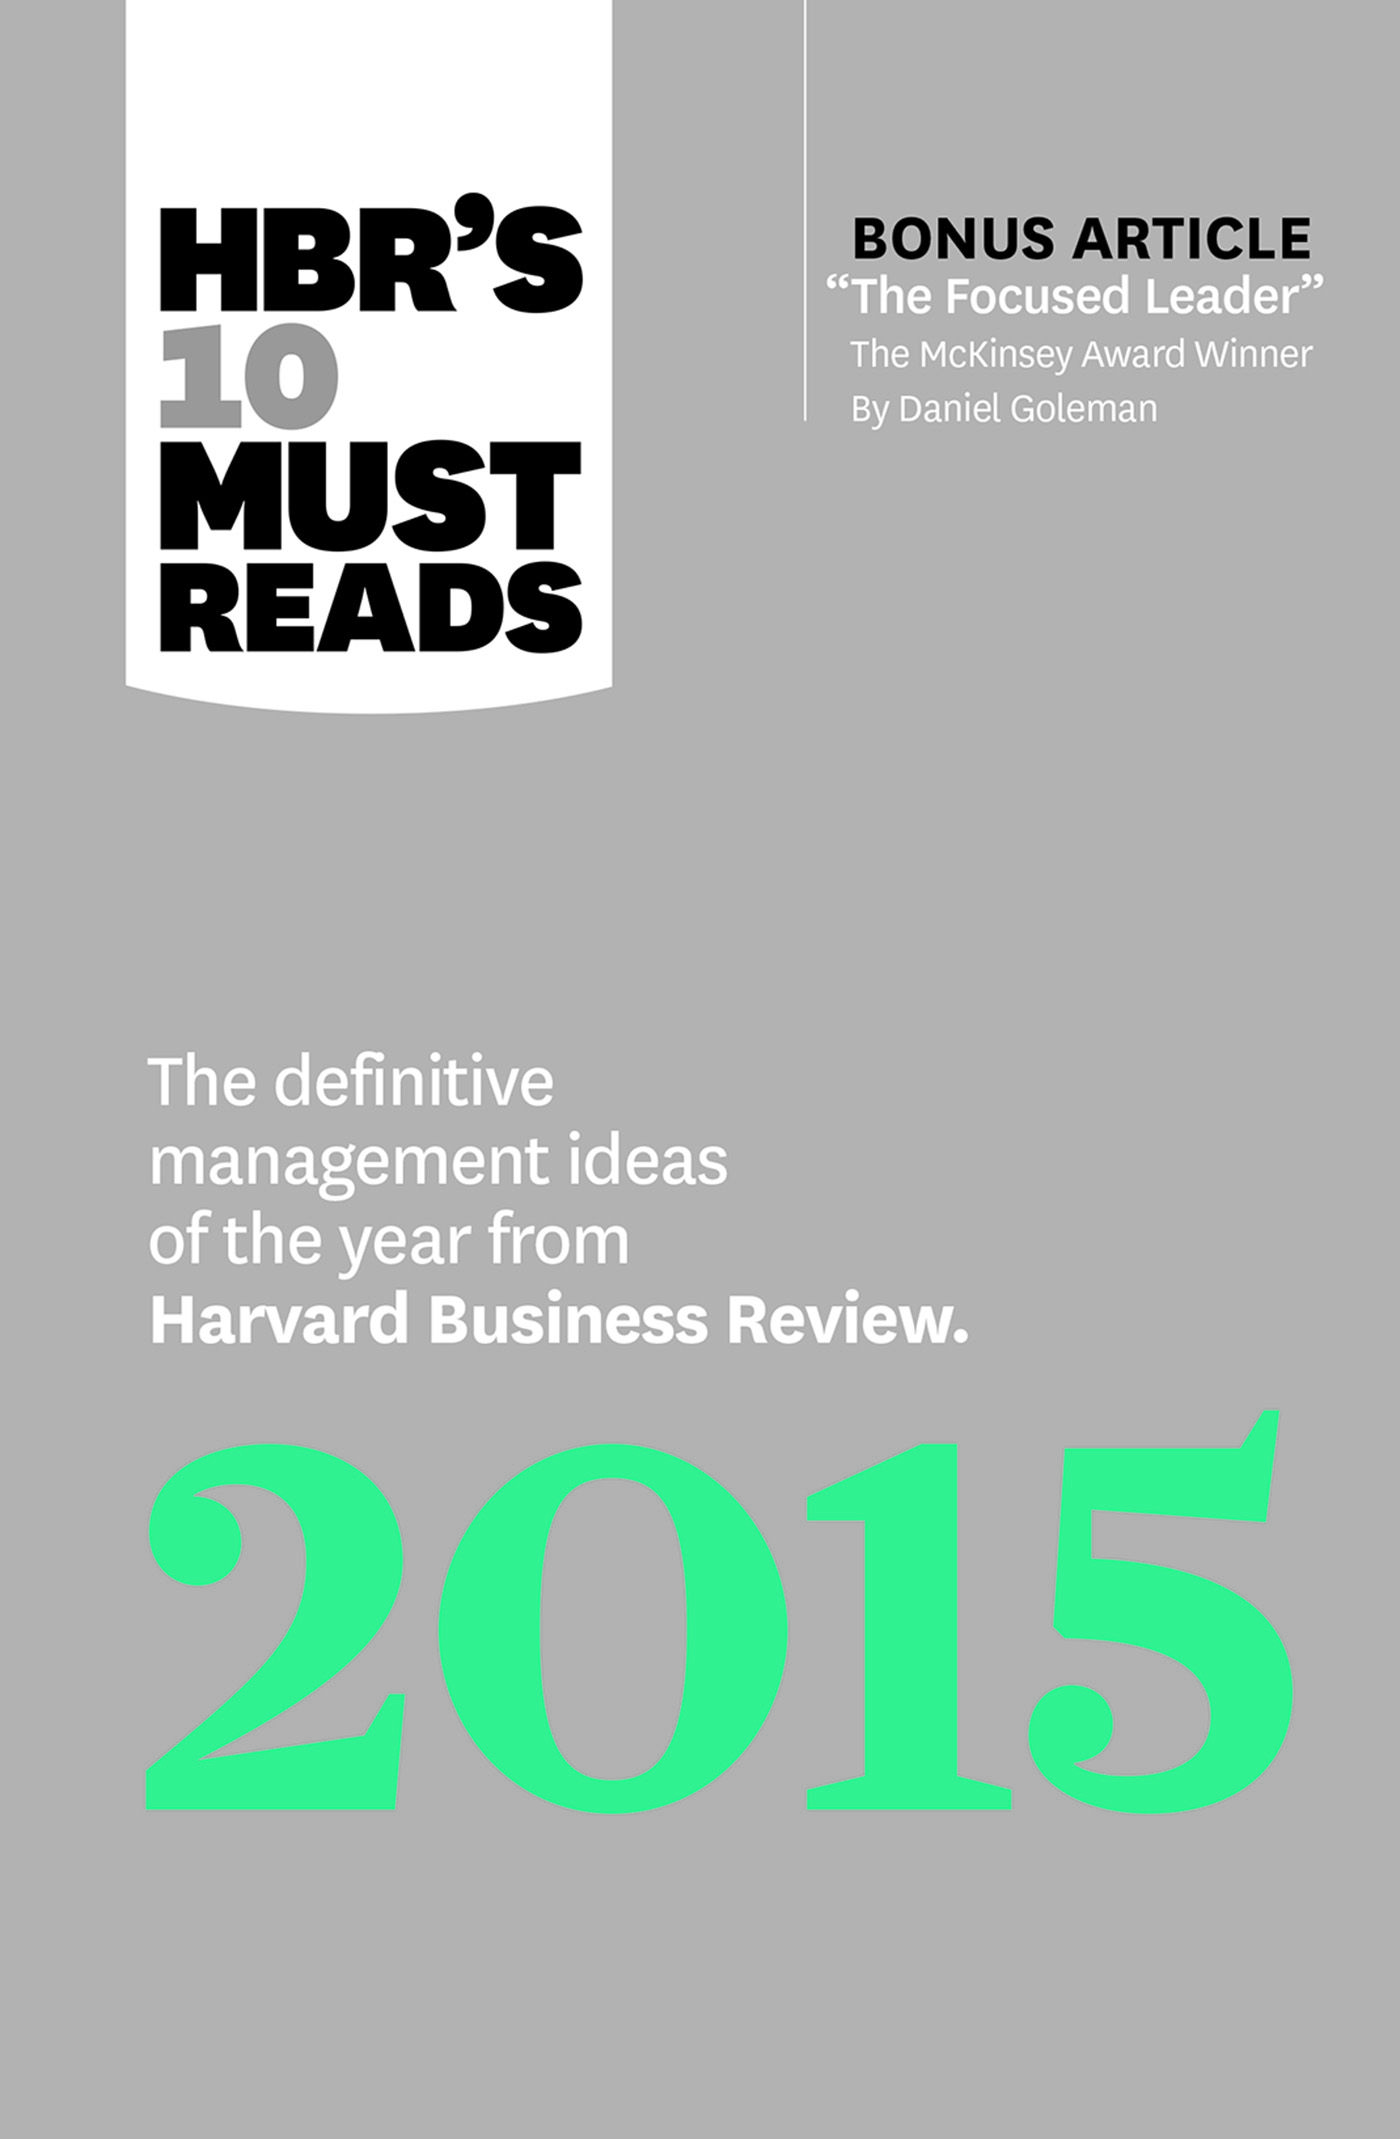 A year's worth of management wisdom, all in one place